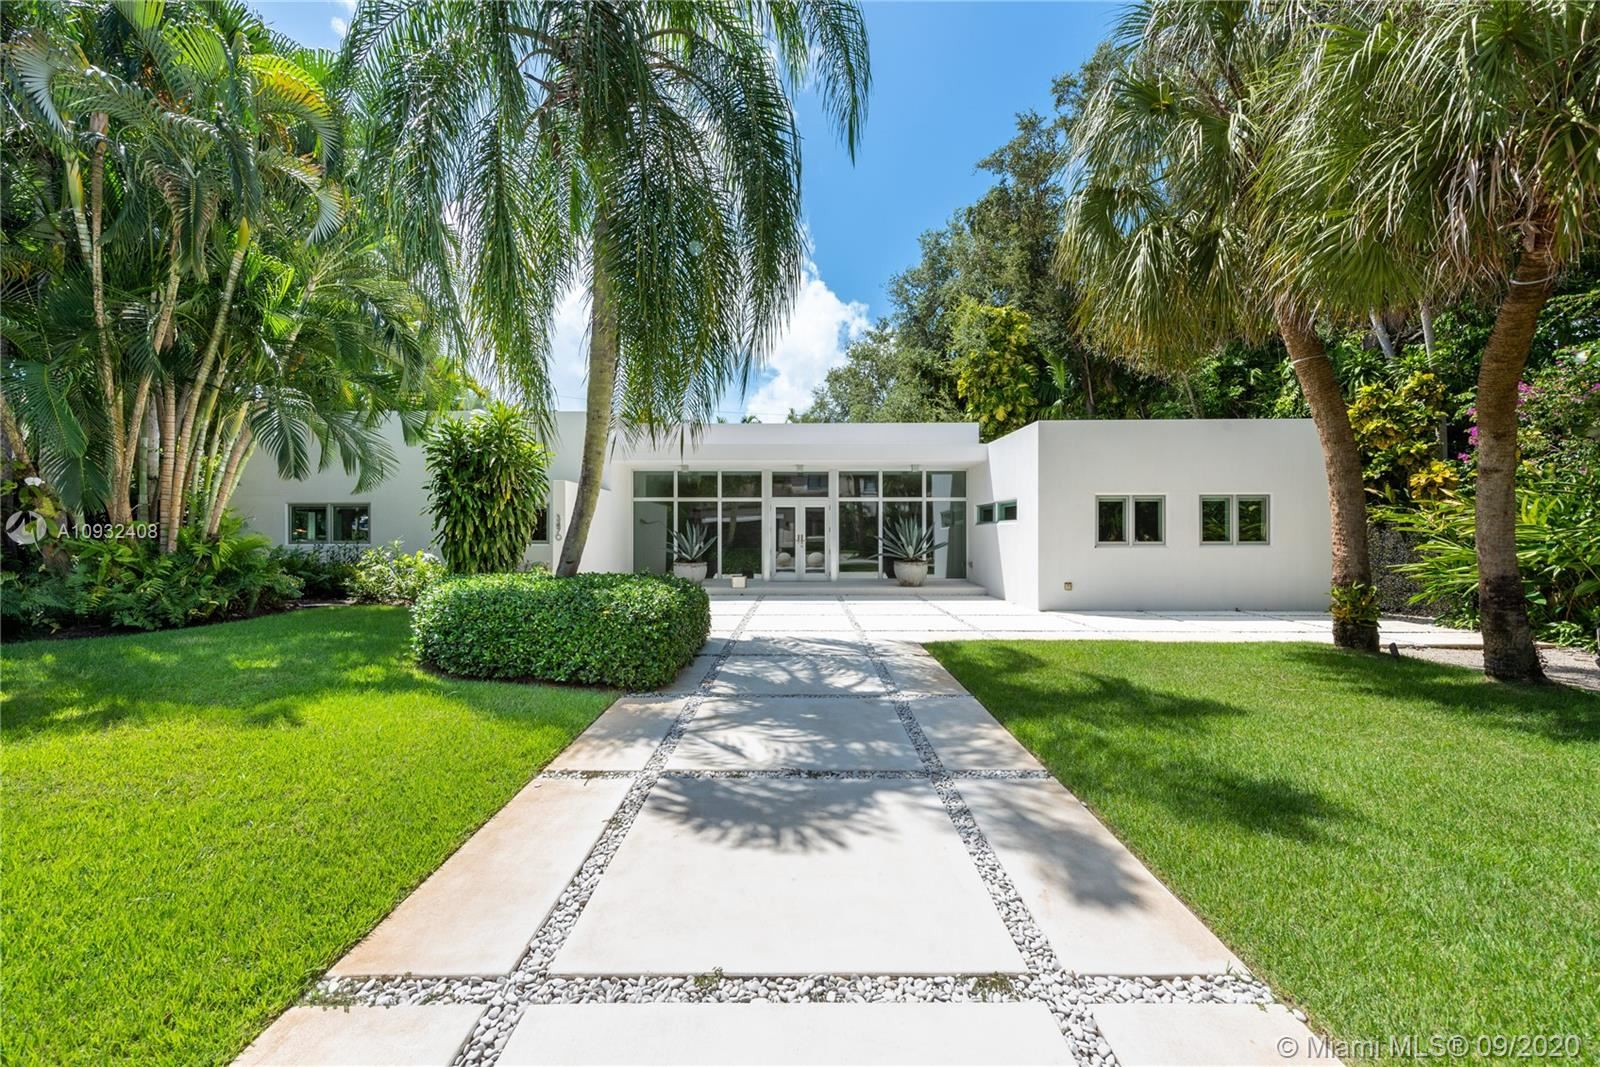 3470 N Moorings Way, Miami, FL 33133 - #: A10932408